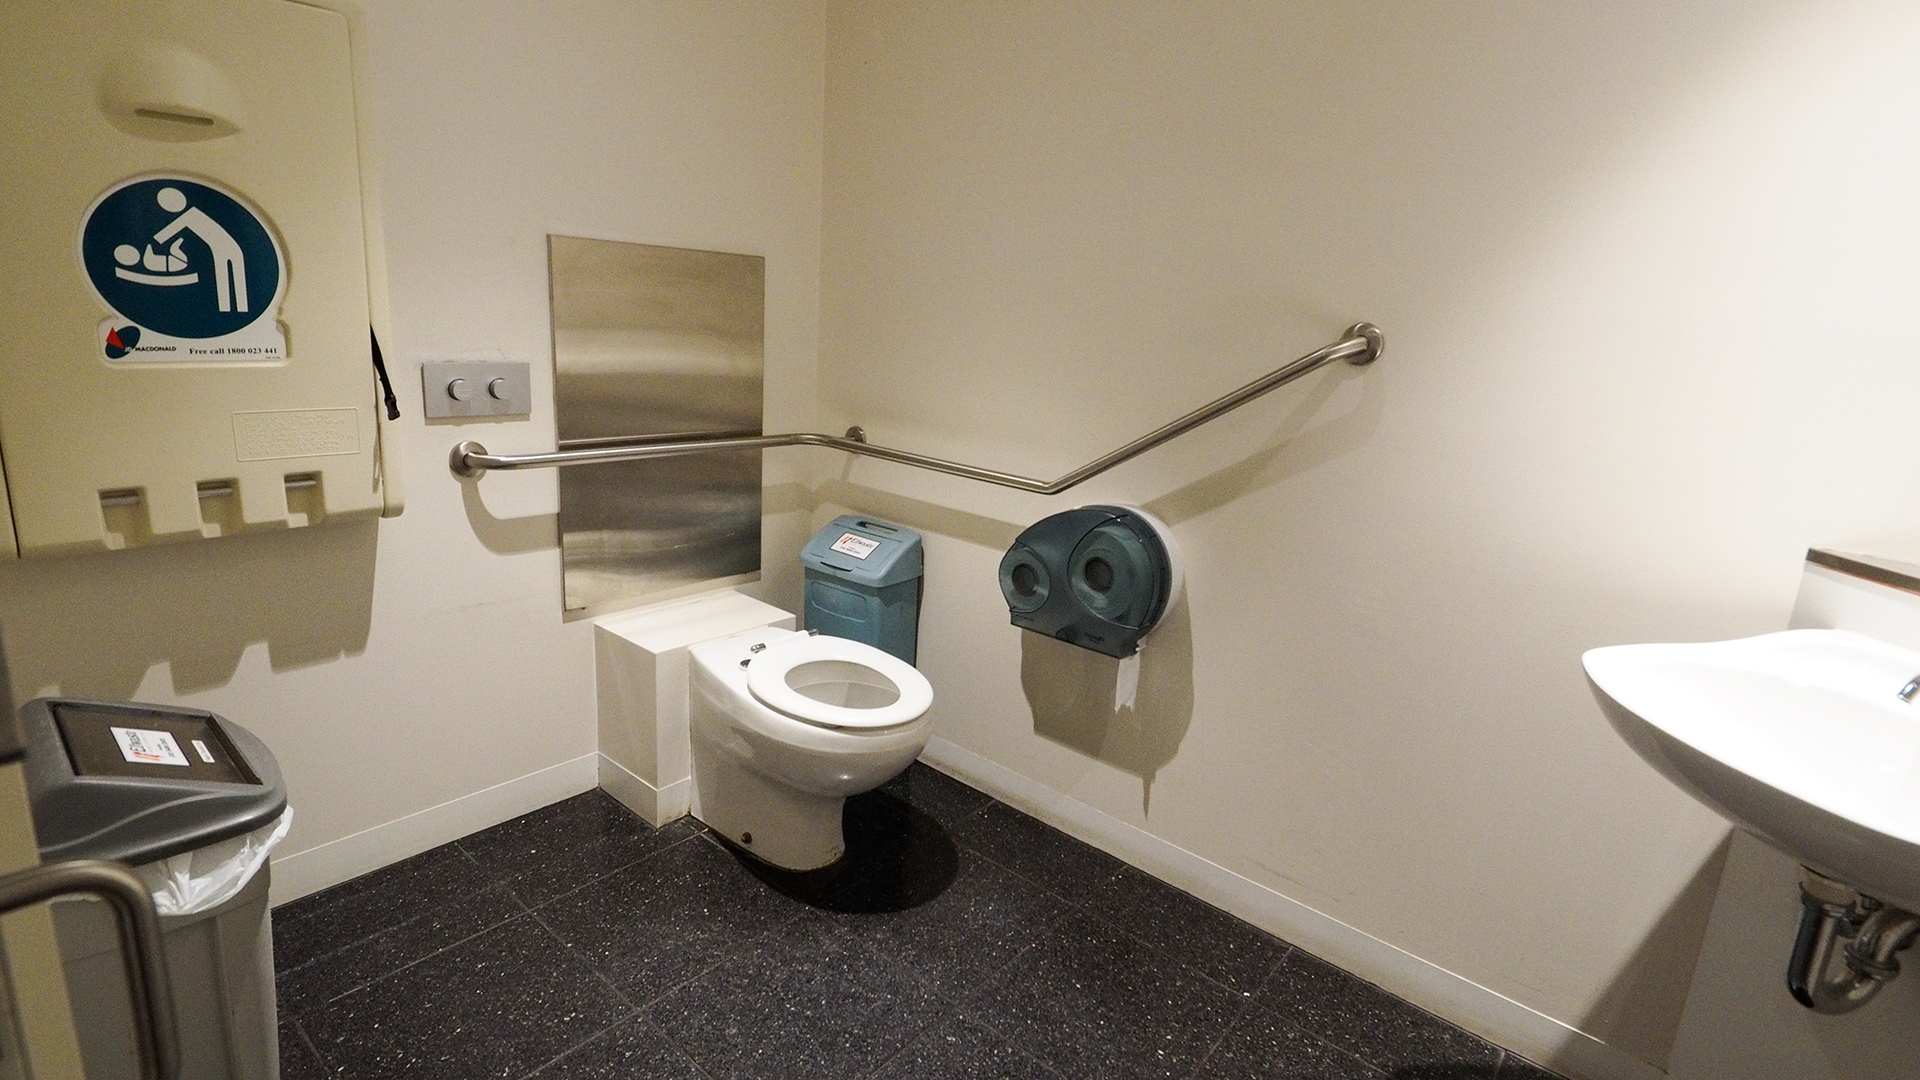 An accessible toilet is located near the View Street entry